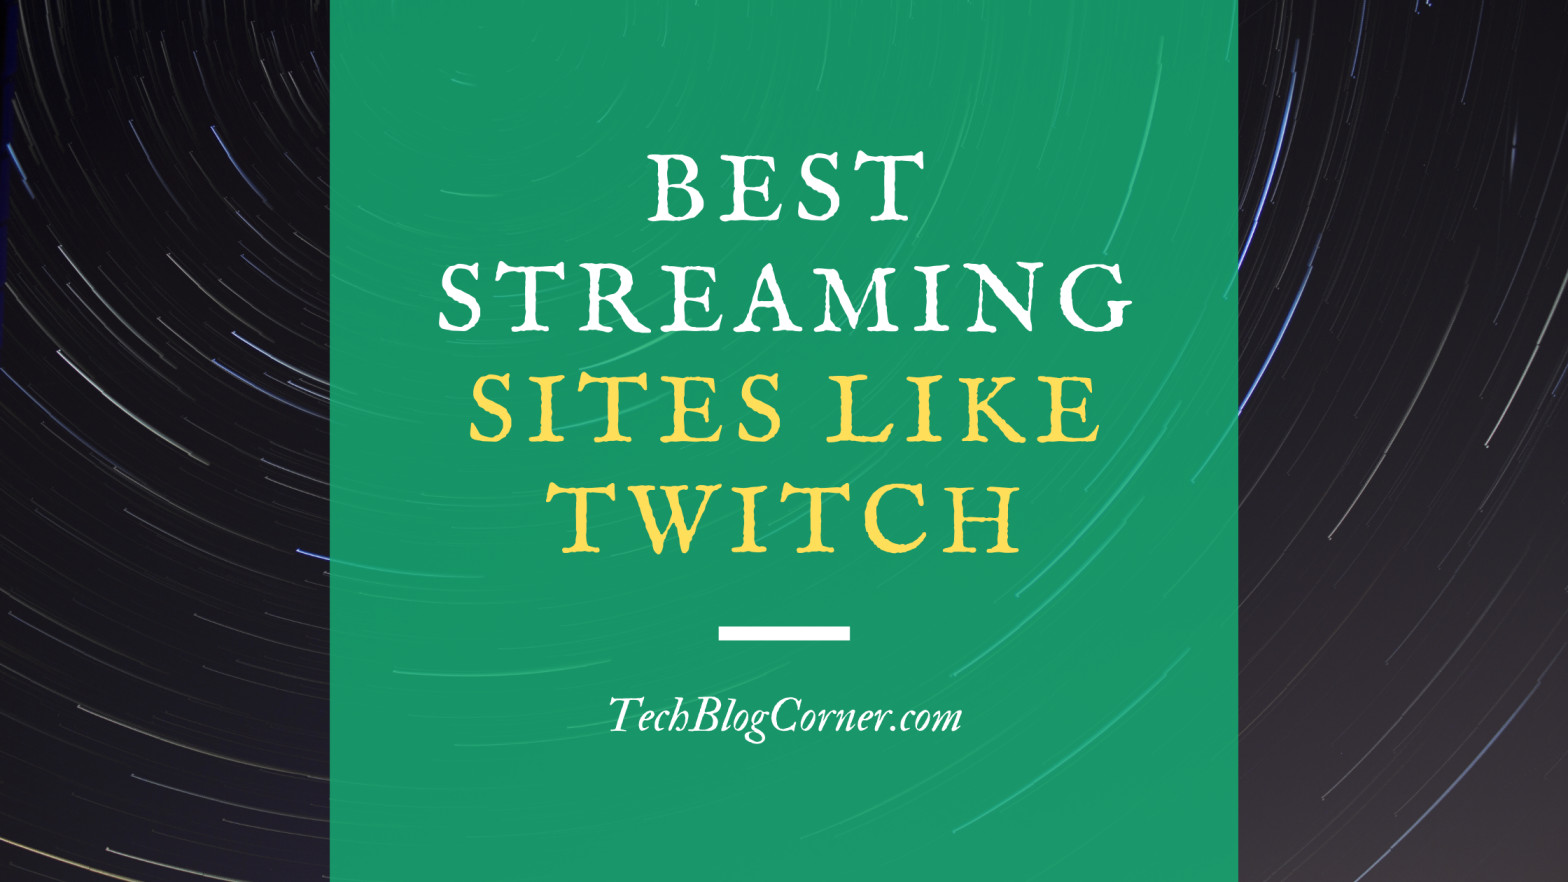 streaming sites like twitch.tv